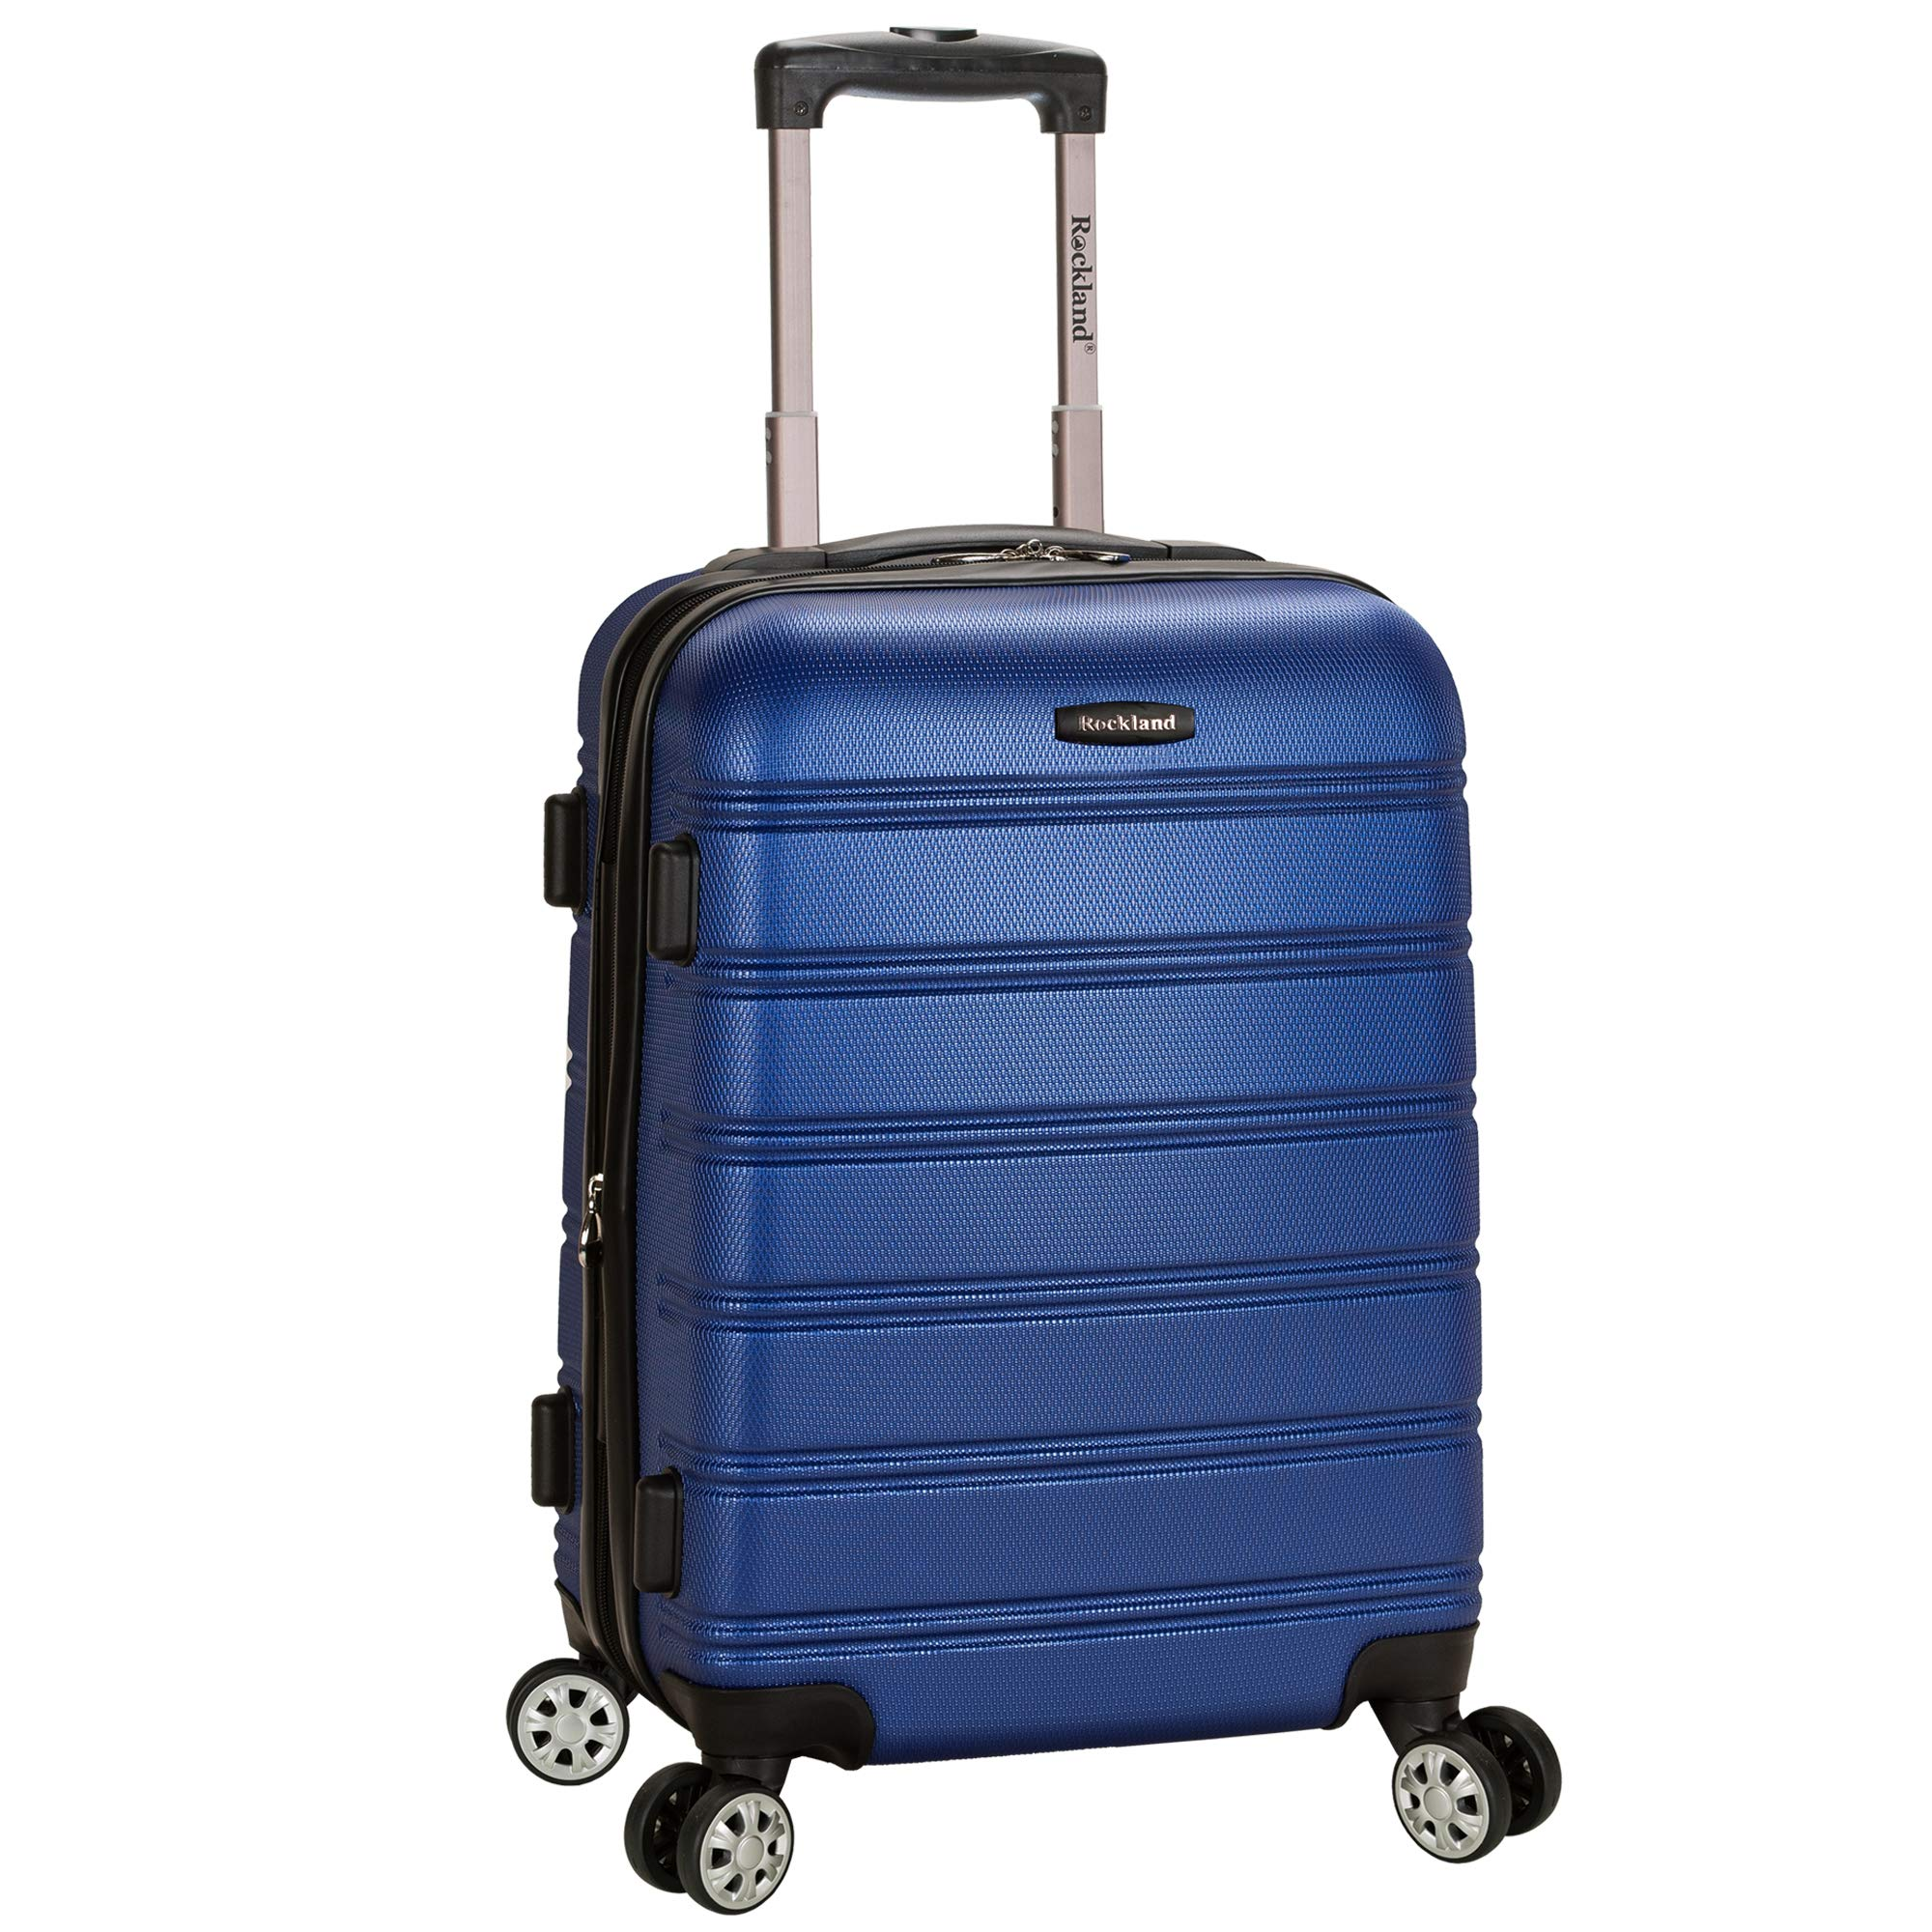 Rockland Luggage Melbourne Expandable Carry